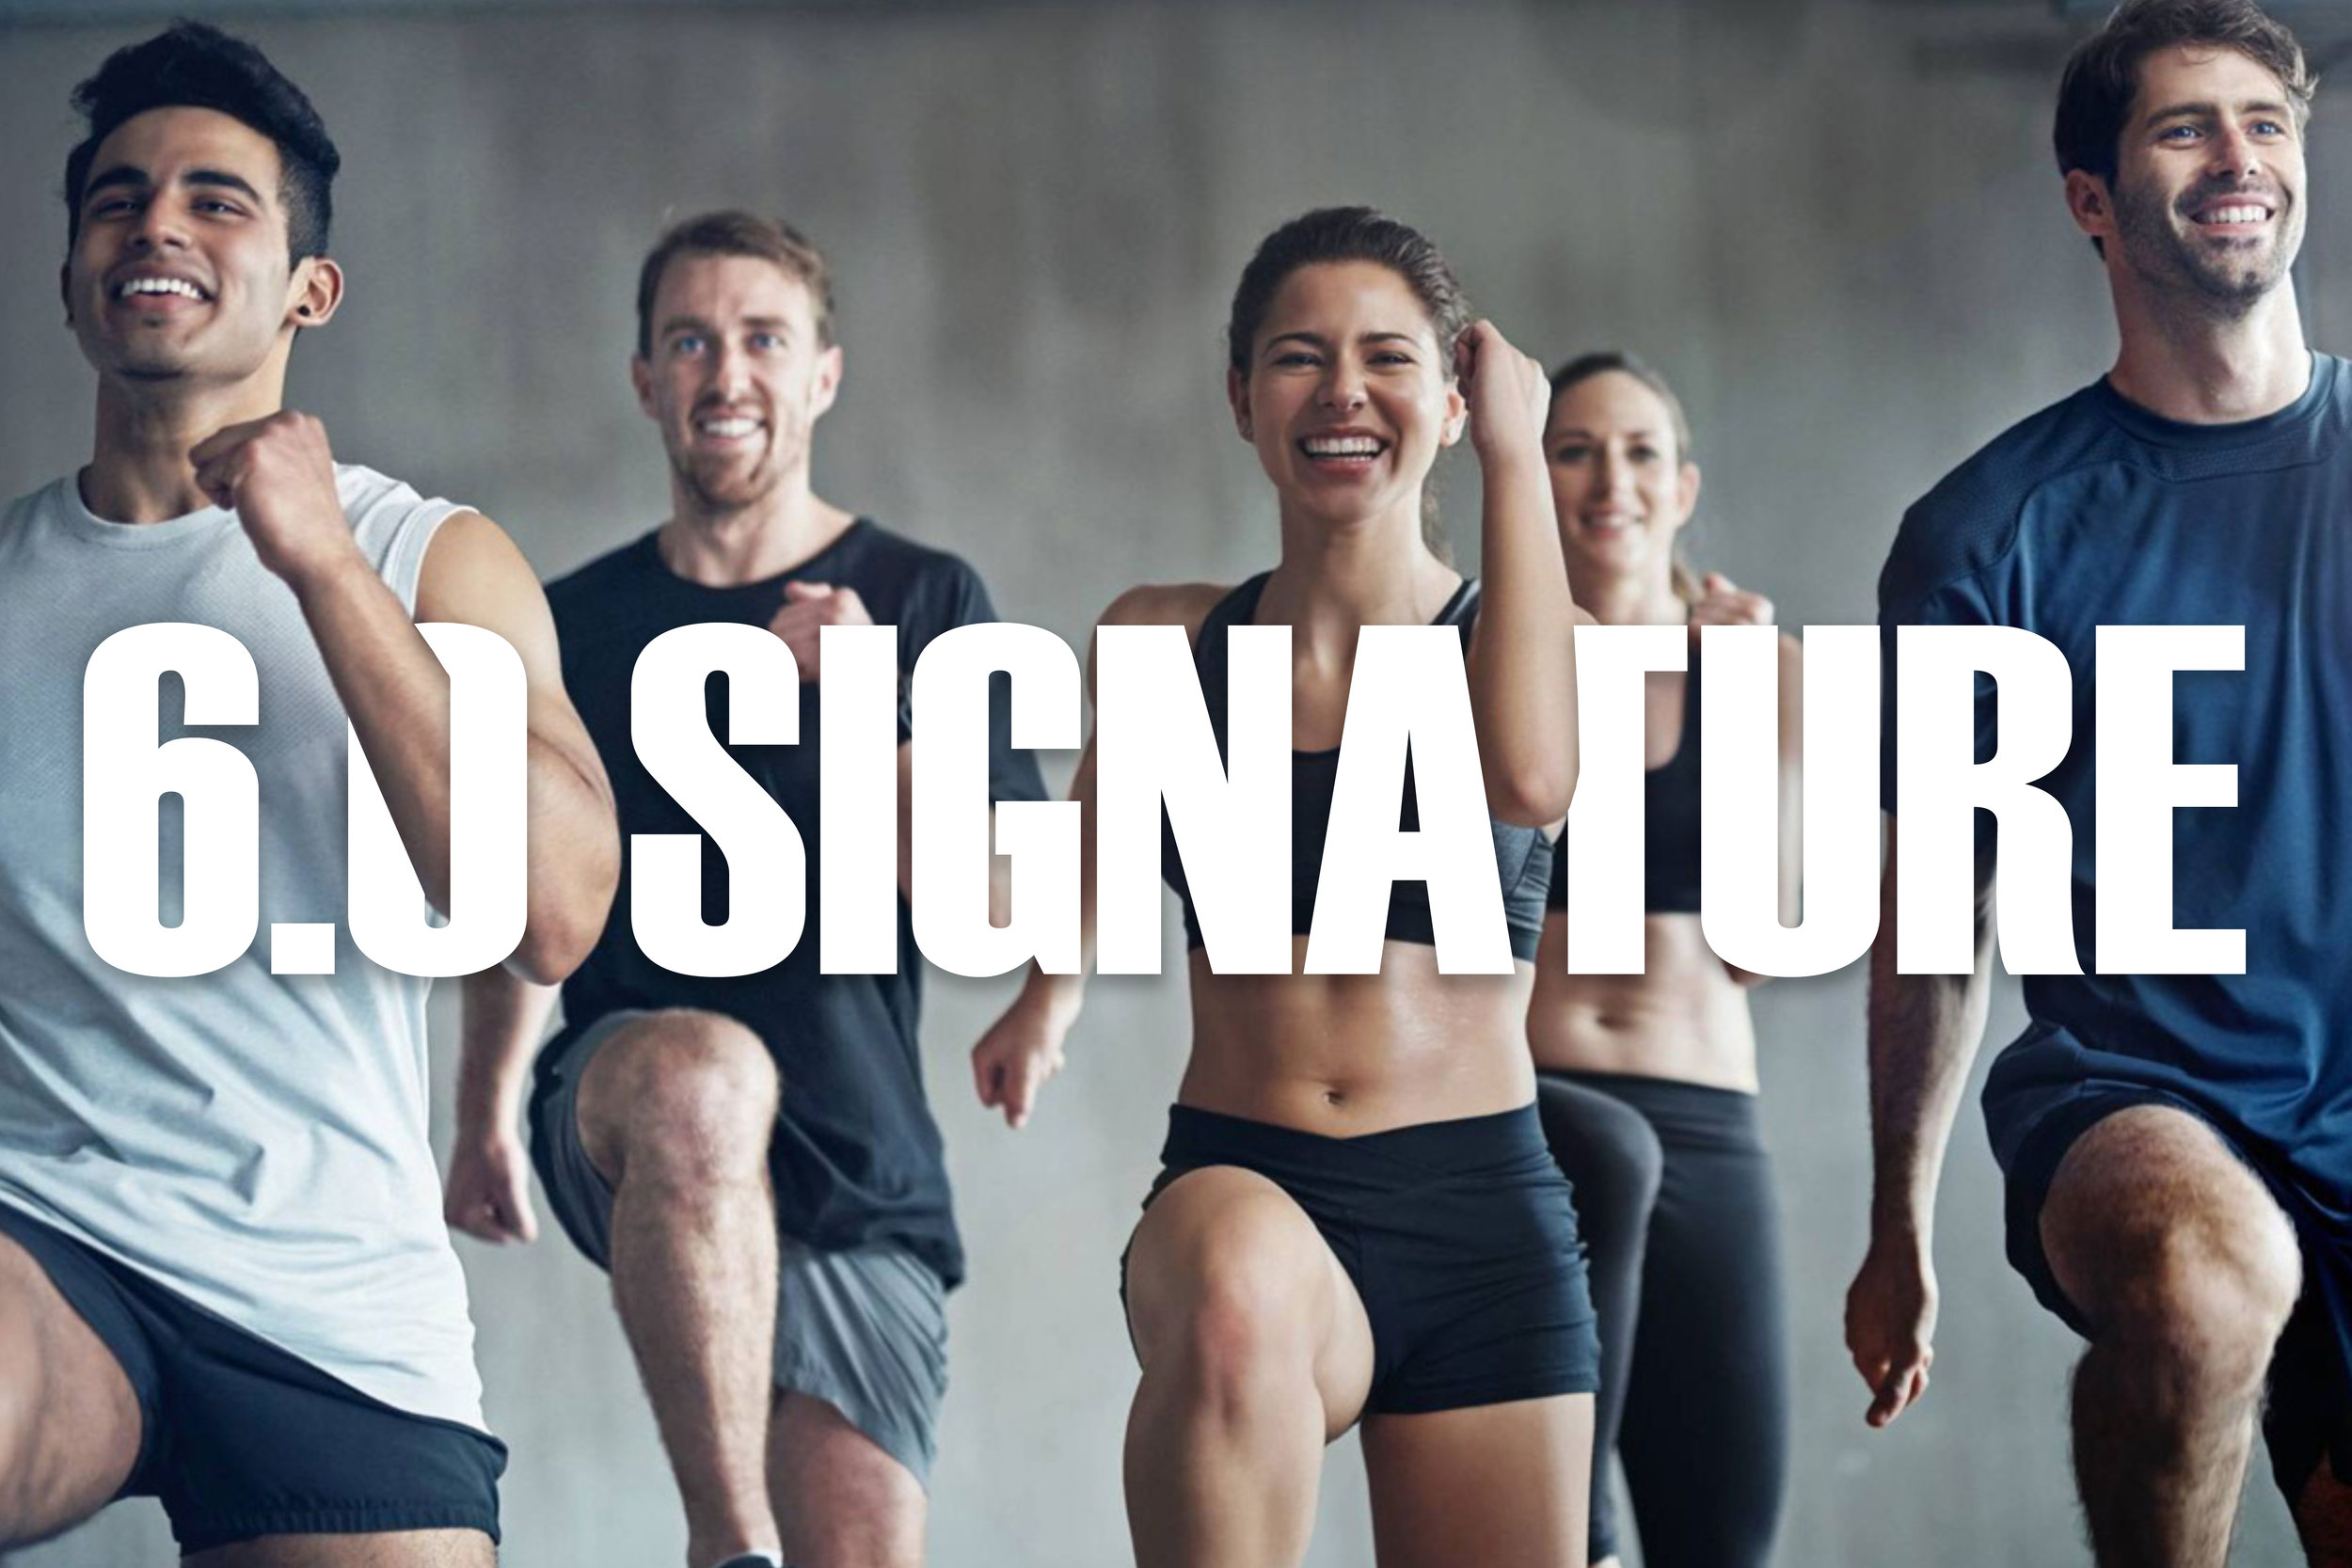 6.0 Signature - *ONLY offered SaturdayOur 6.0 Signature class is our only one hour long class and is set to the beat of a LIVE DJ. Just like our 6.0 Fit class this class consists of cardiovascular conditioning, strength training, stretching and kickboxing.